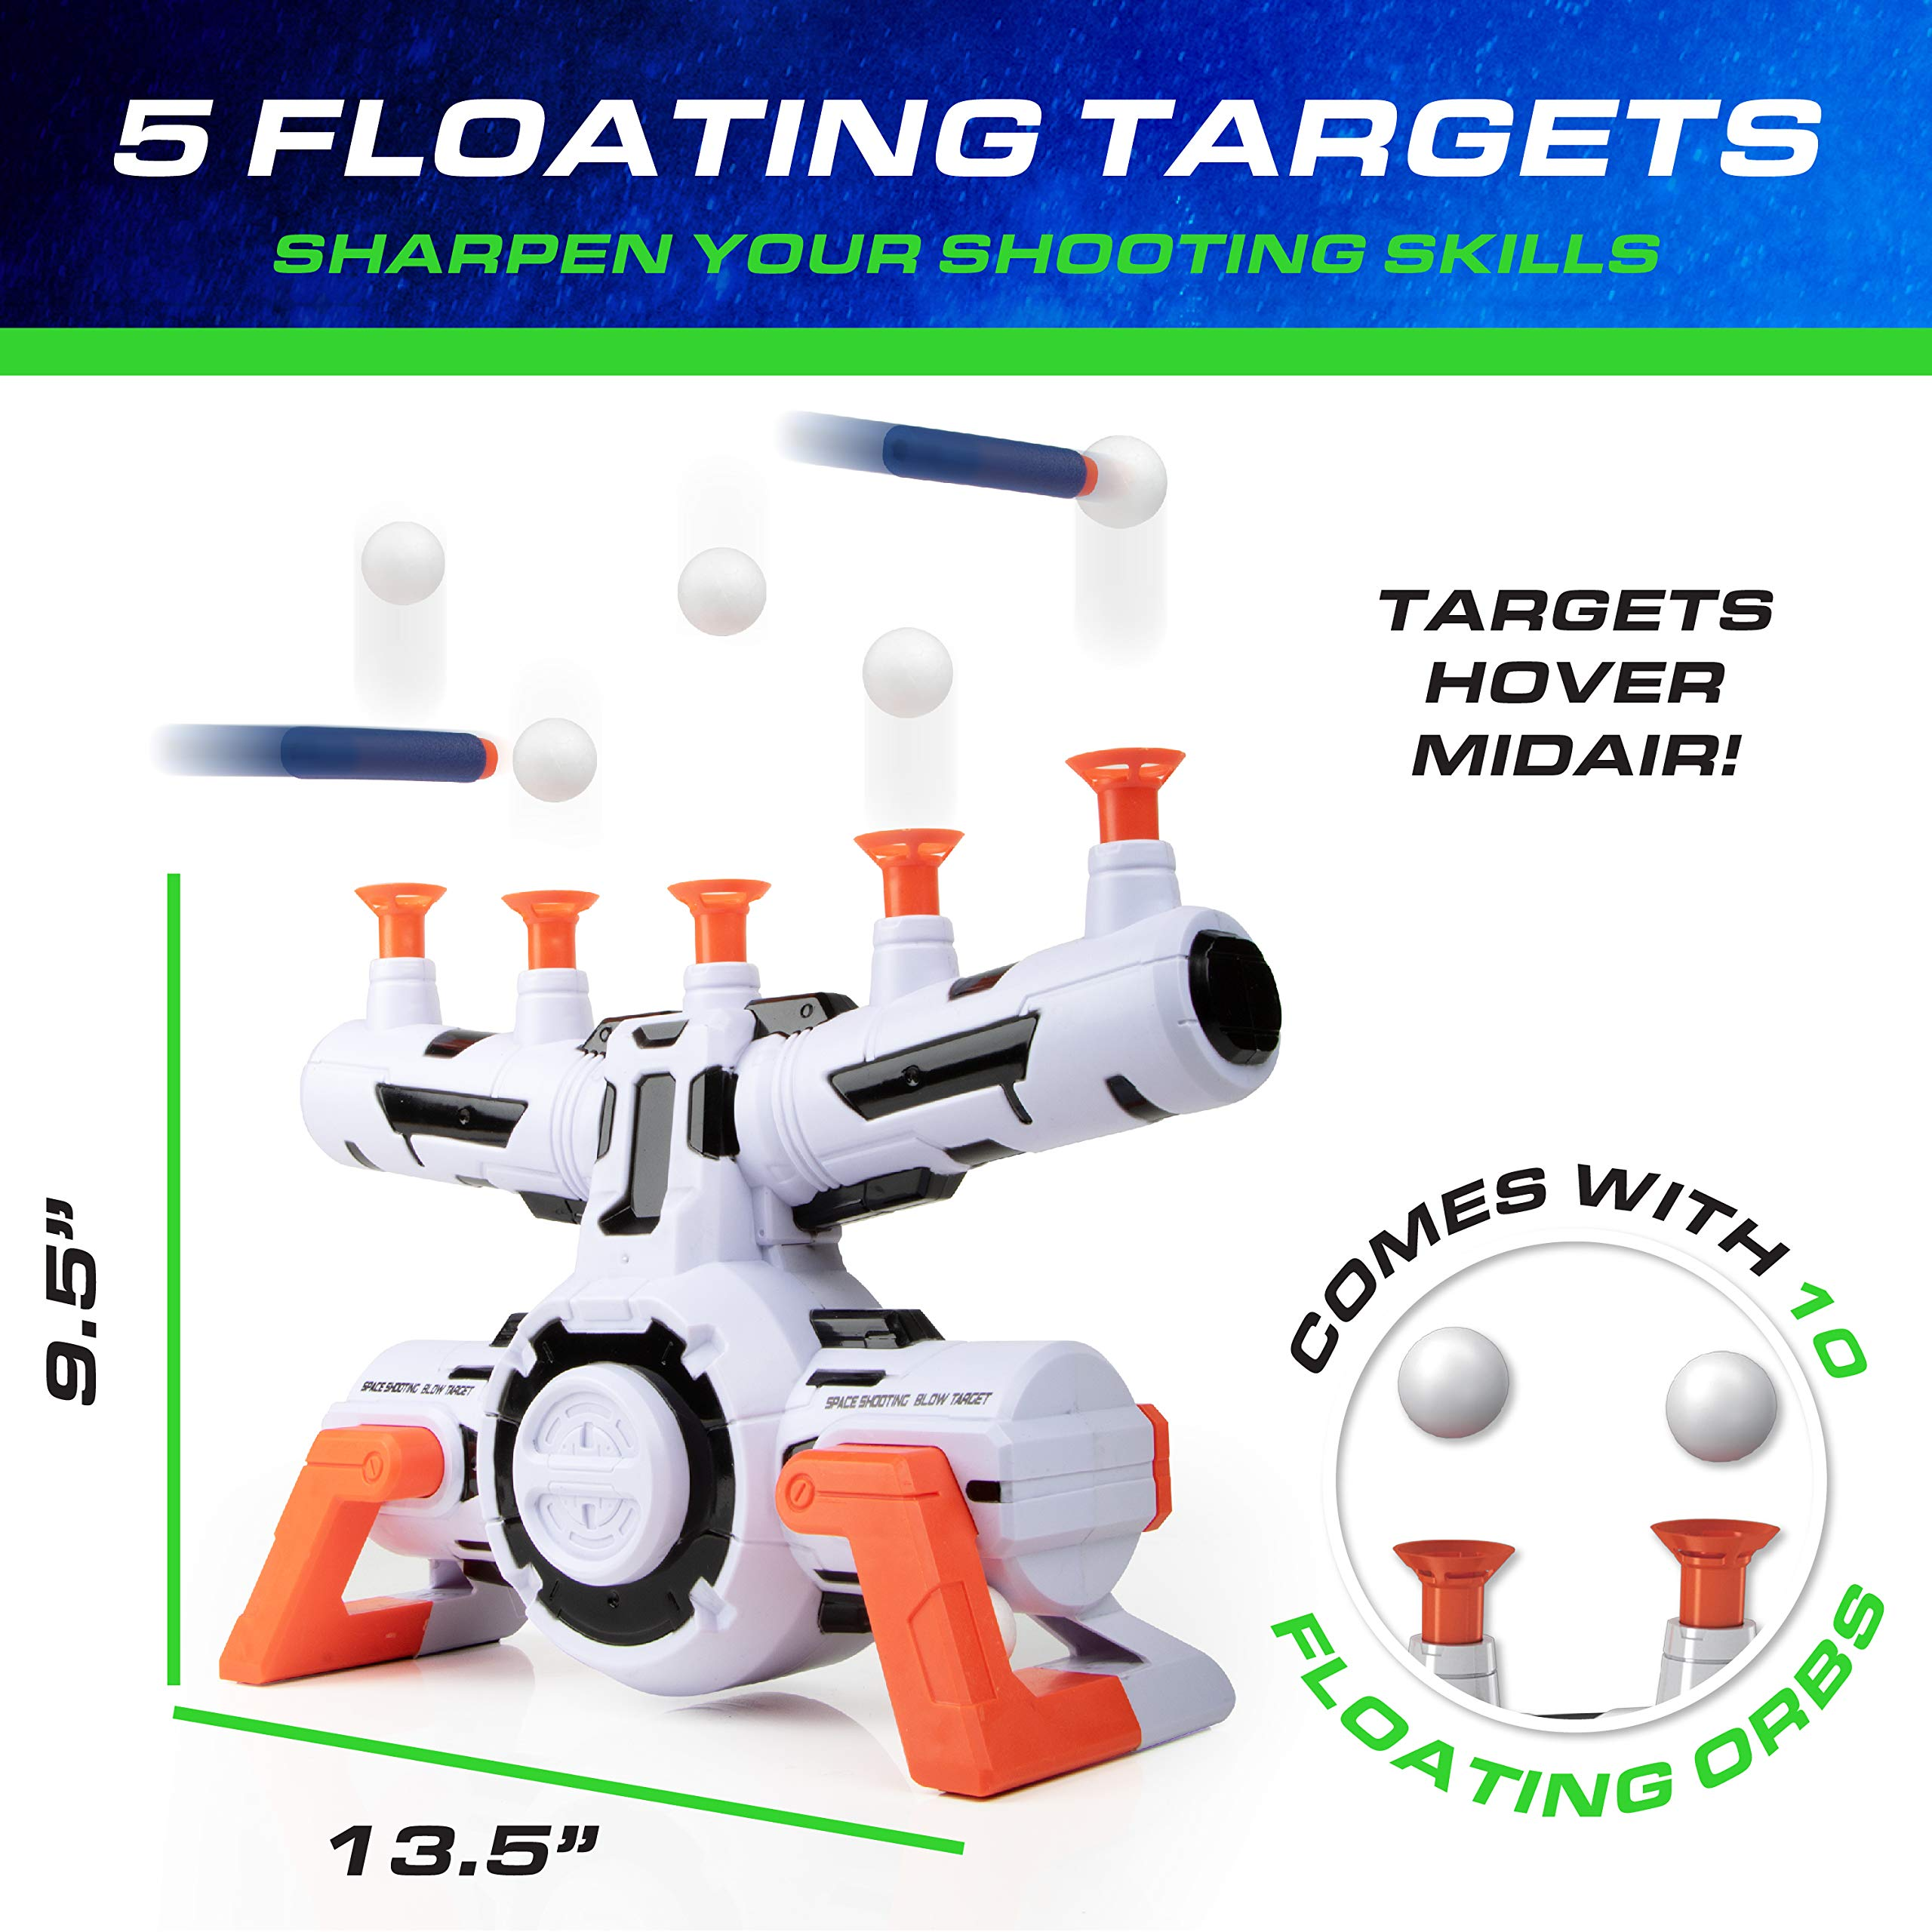 USA Toyz Compatible Nerf Targets for Shooting - AstroShot Zero G Floating Orbs Nerf Target Practice with Blaster Toy Guns for Boys or Girls and Foam Darts by USA Toyz (Image #2)